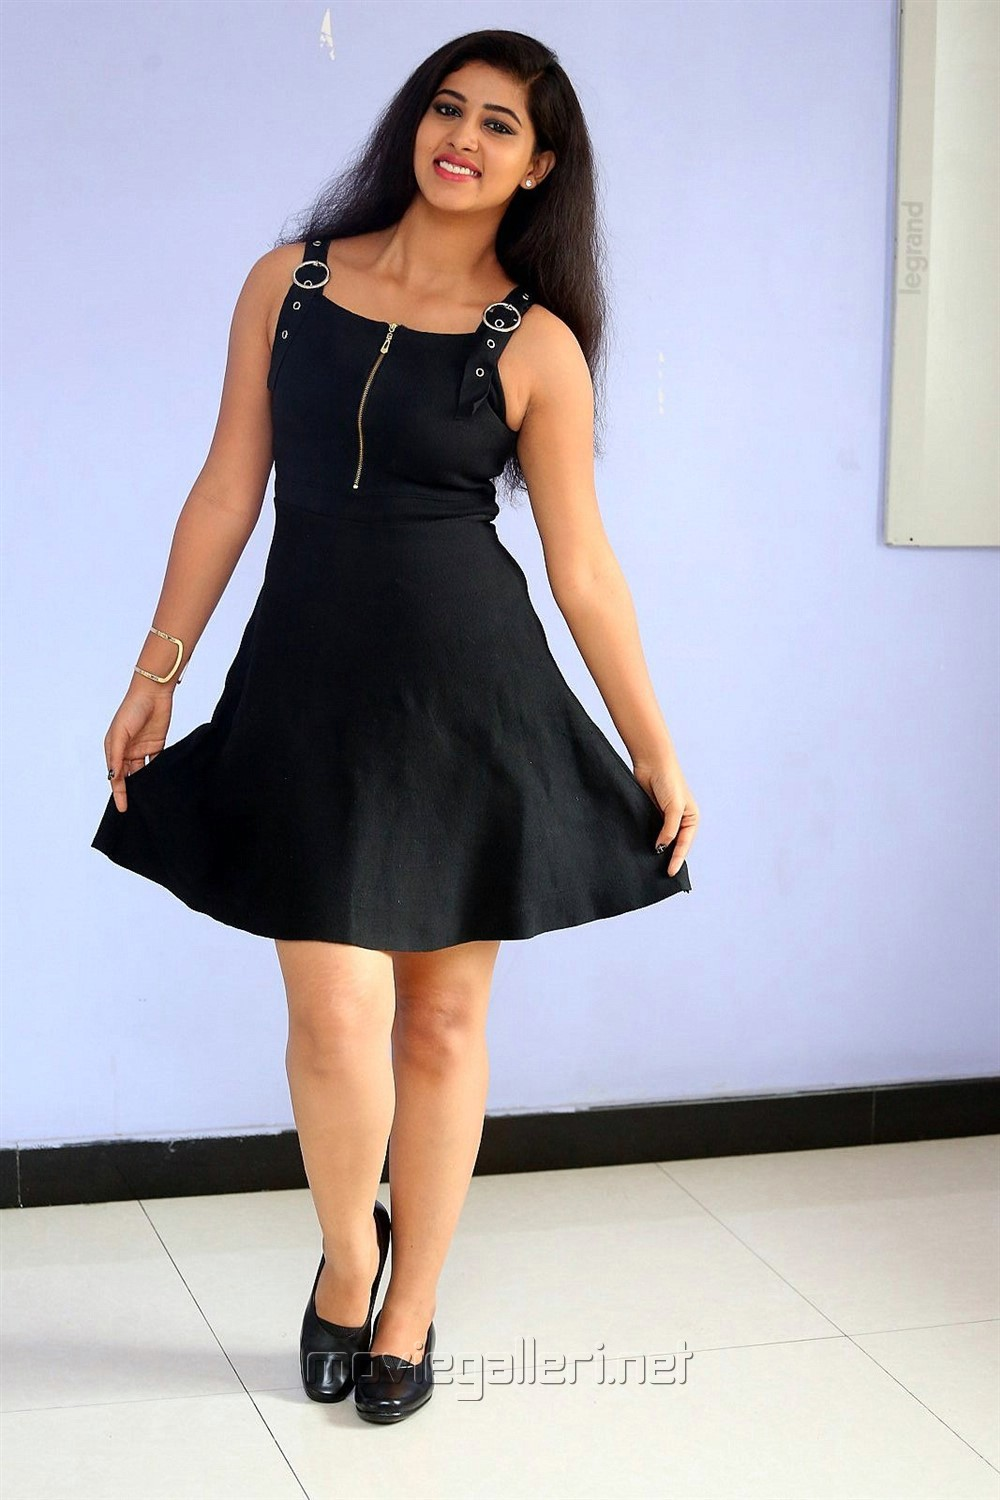 Mr Homanand Actress Pavani Hot Images in Black Dress